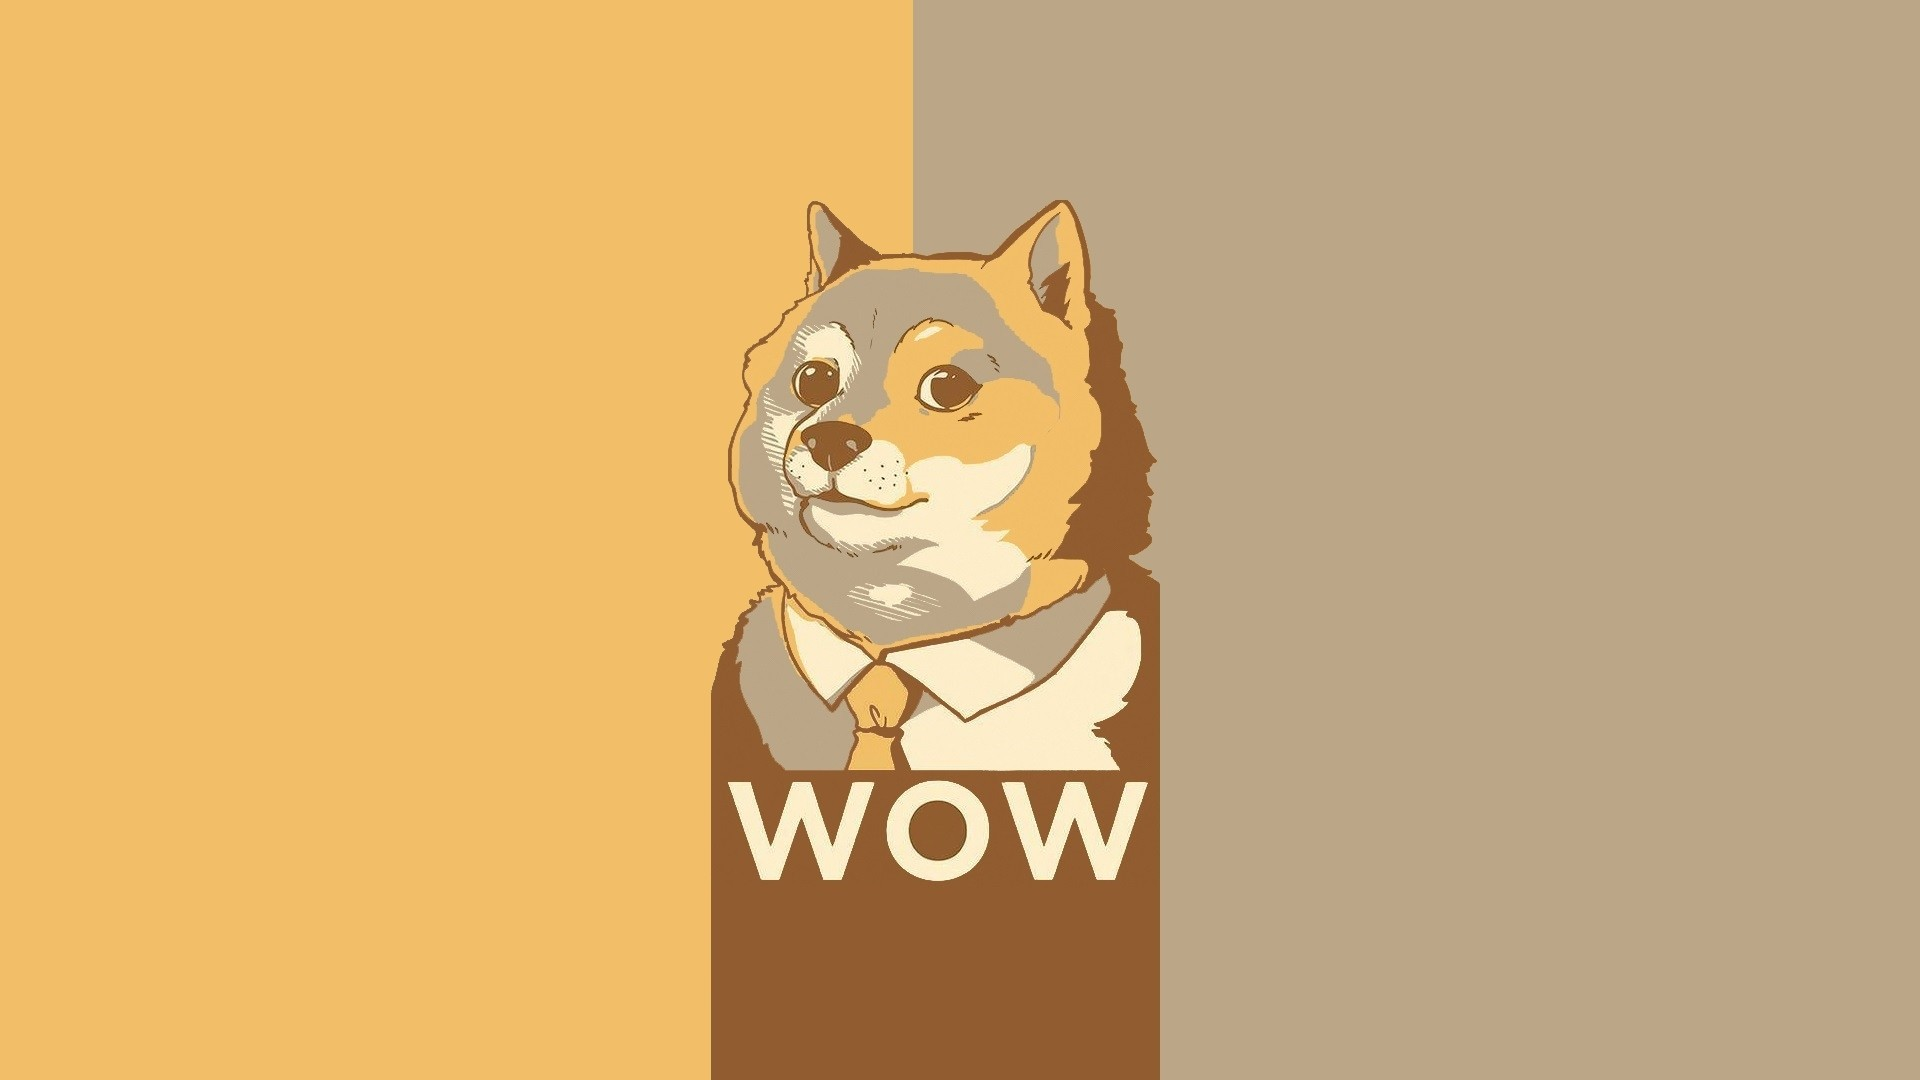 Doge Wallpaper Tap The Pin For The Most Adorable Pawtastic Fur